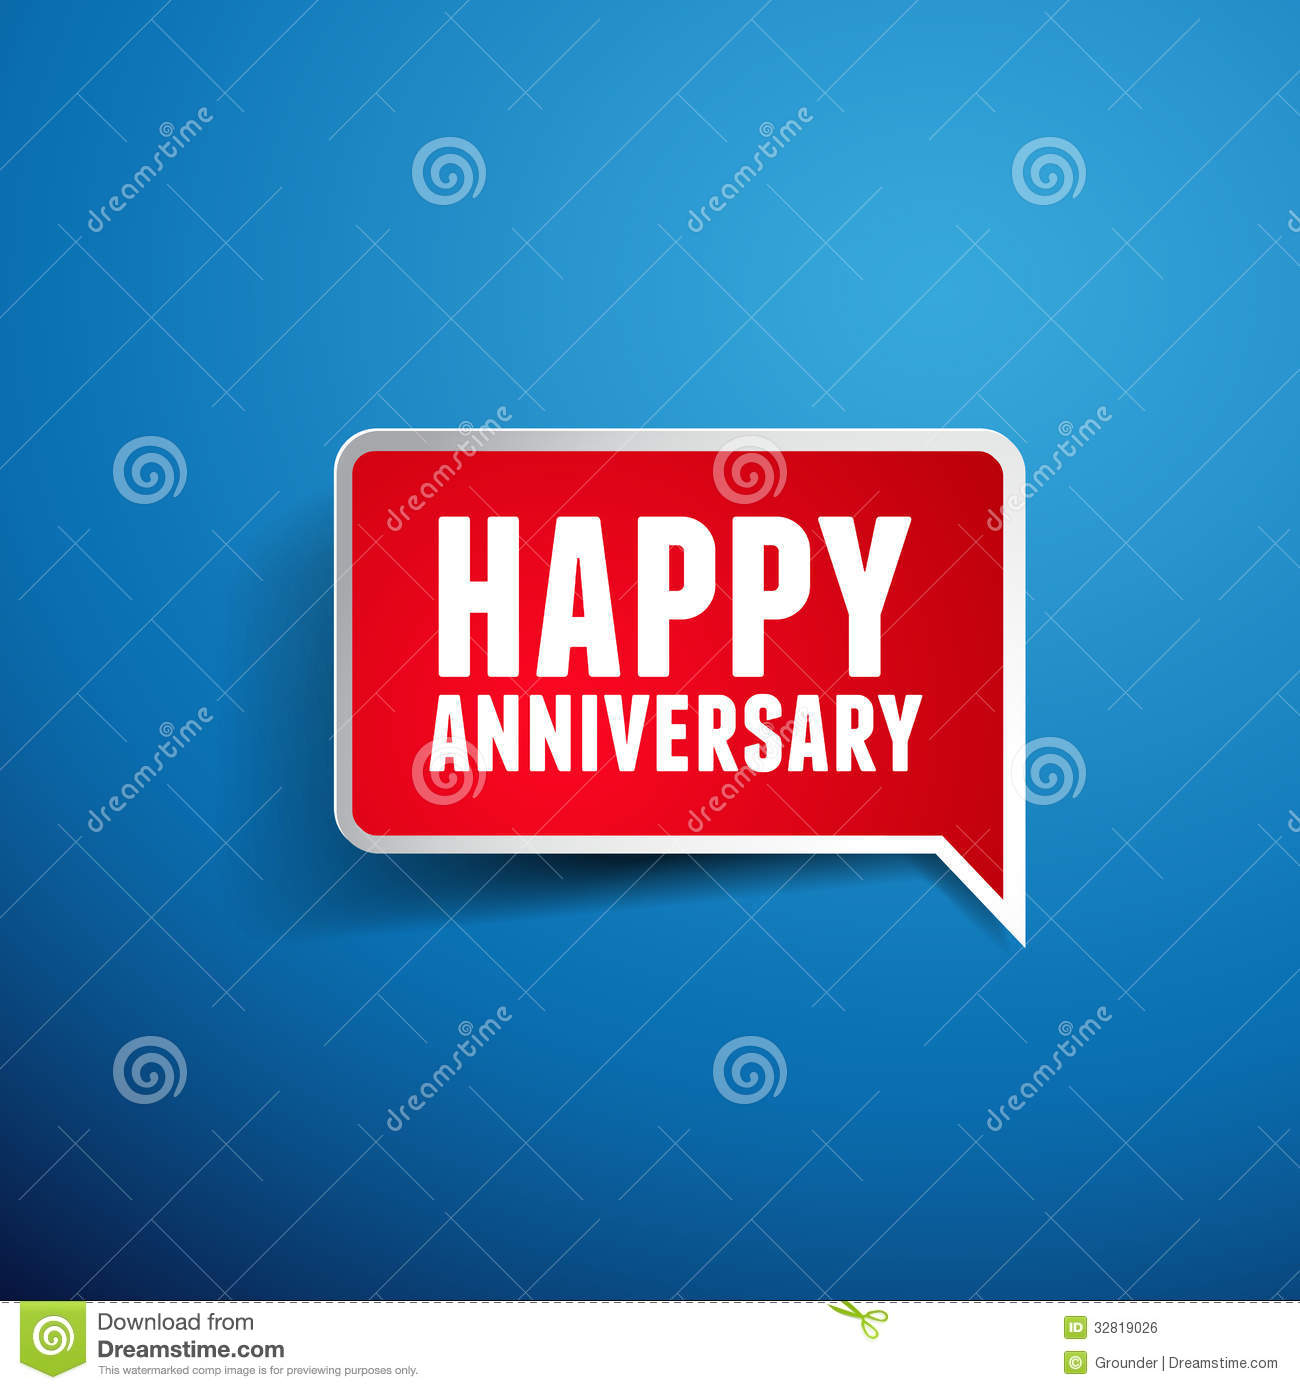 Happy Anniversary Greeting Template Royalty Free Stock